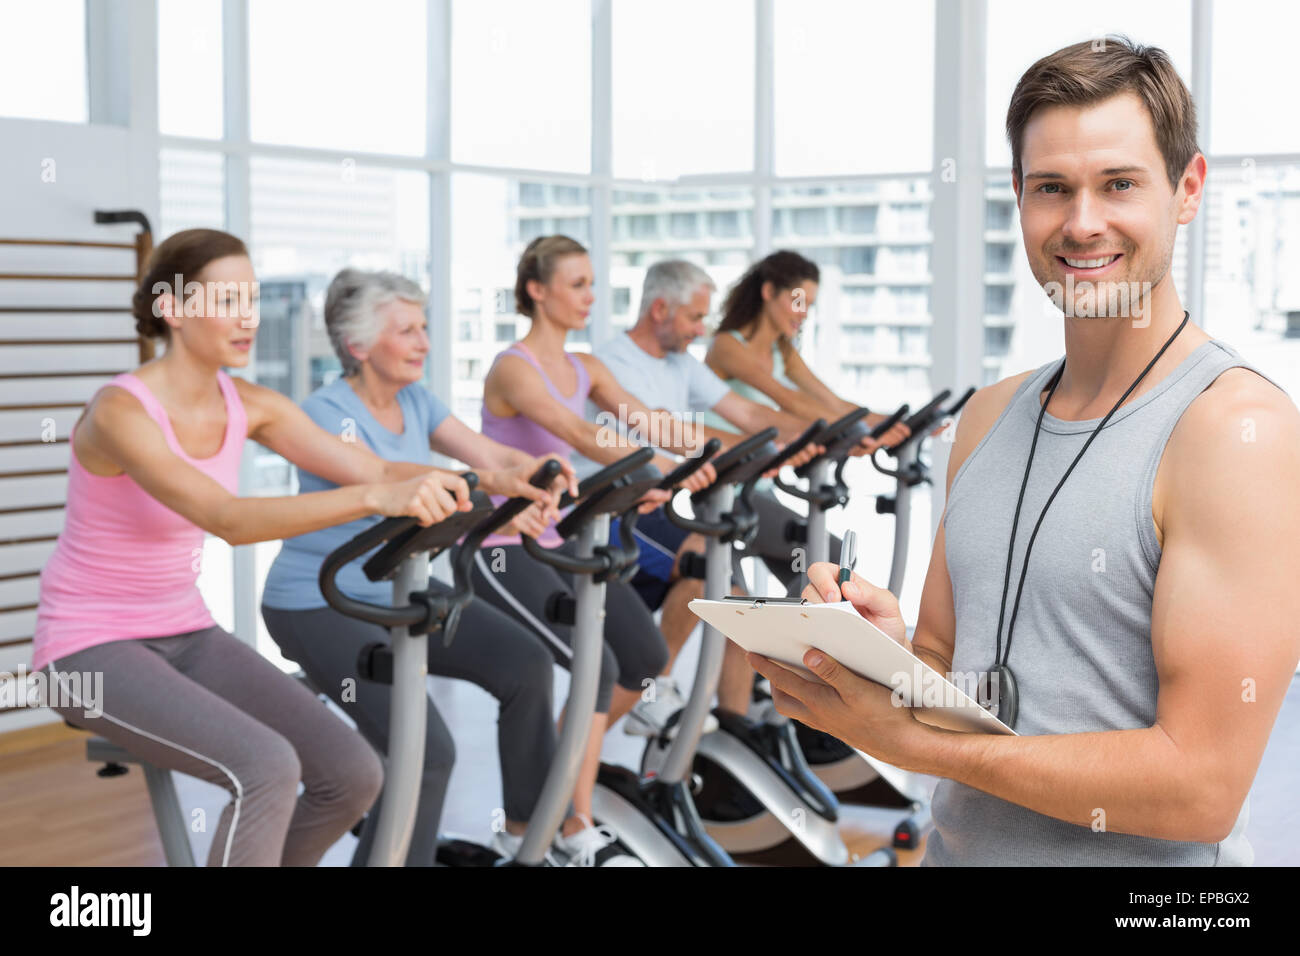 Trainer with people working out at spinning class - Stock Image